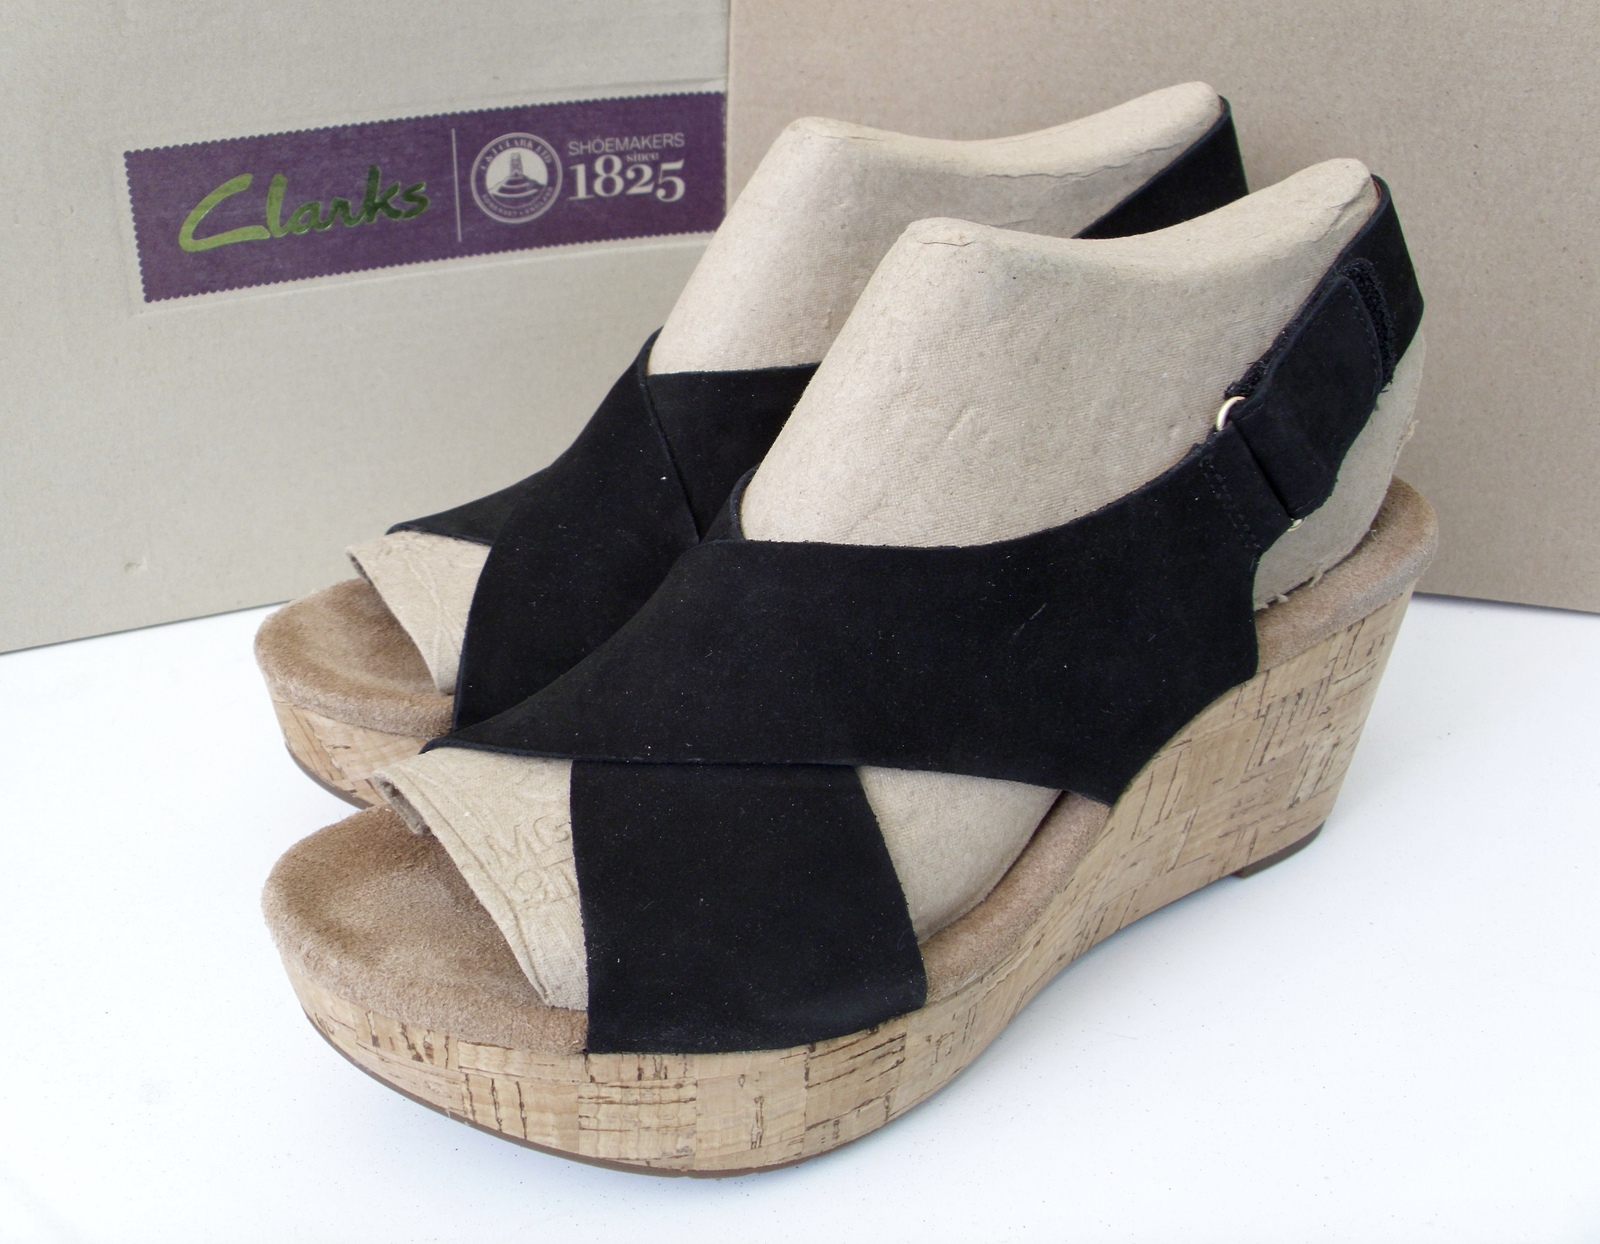 e8ba7ad67c3 Clarks Women s Wedge sandals and 27 similar items. Dsci0463